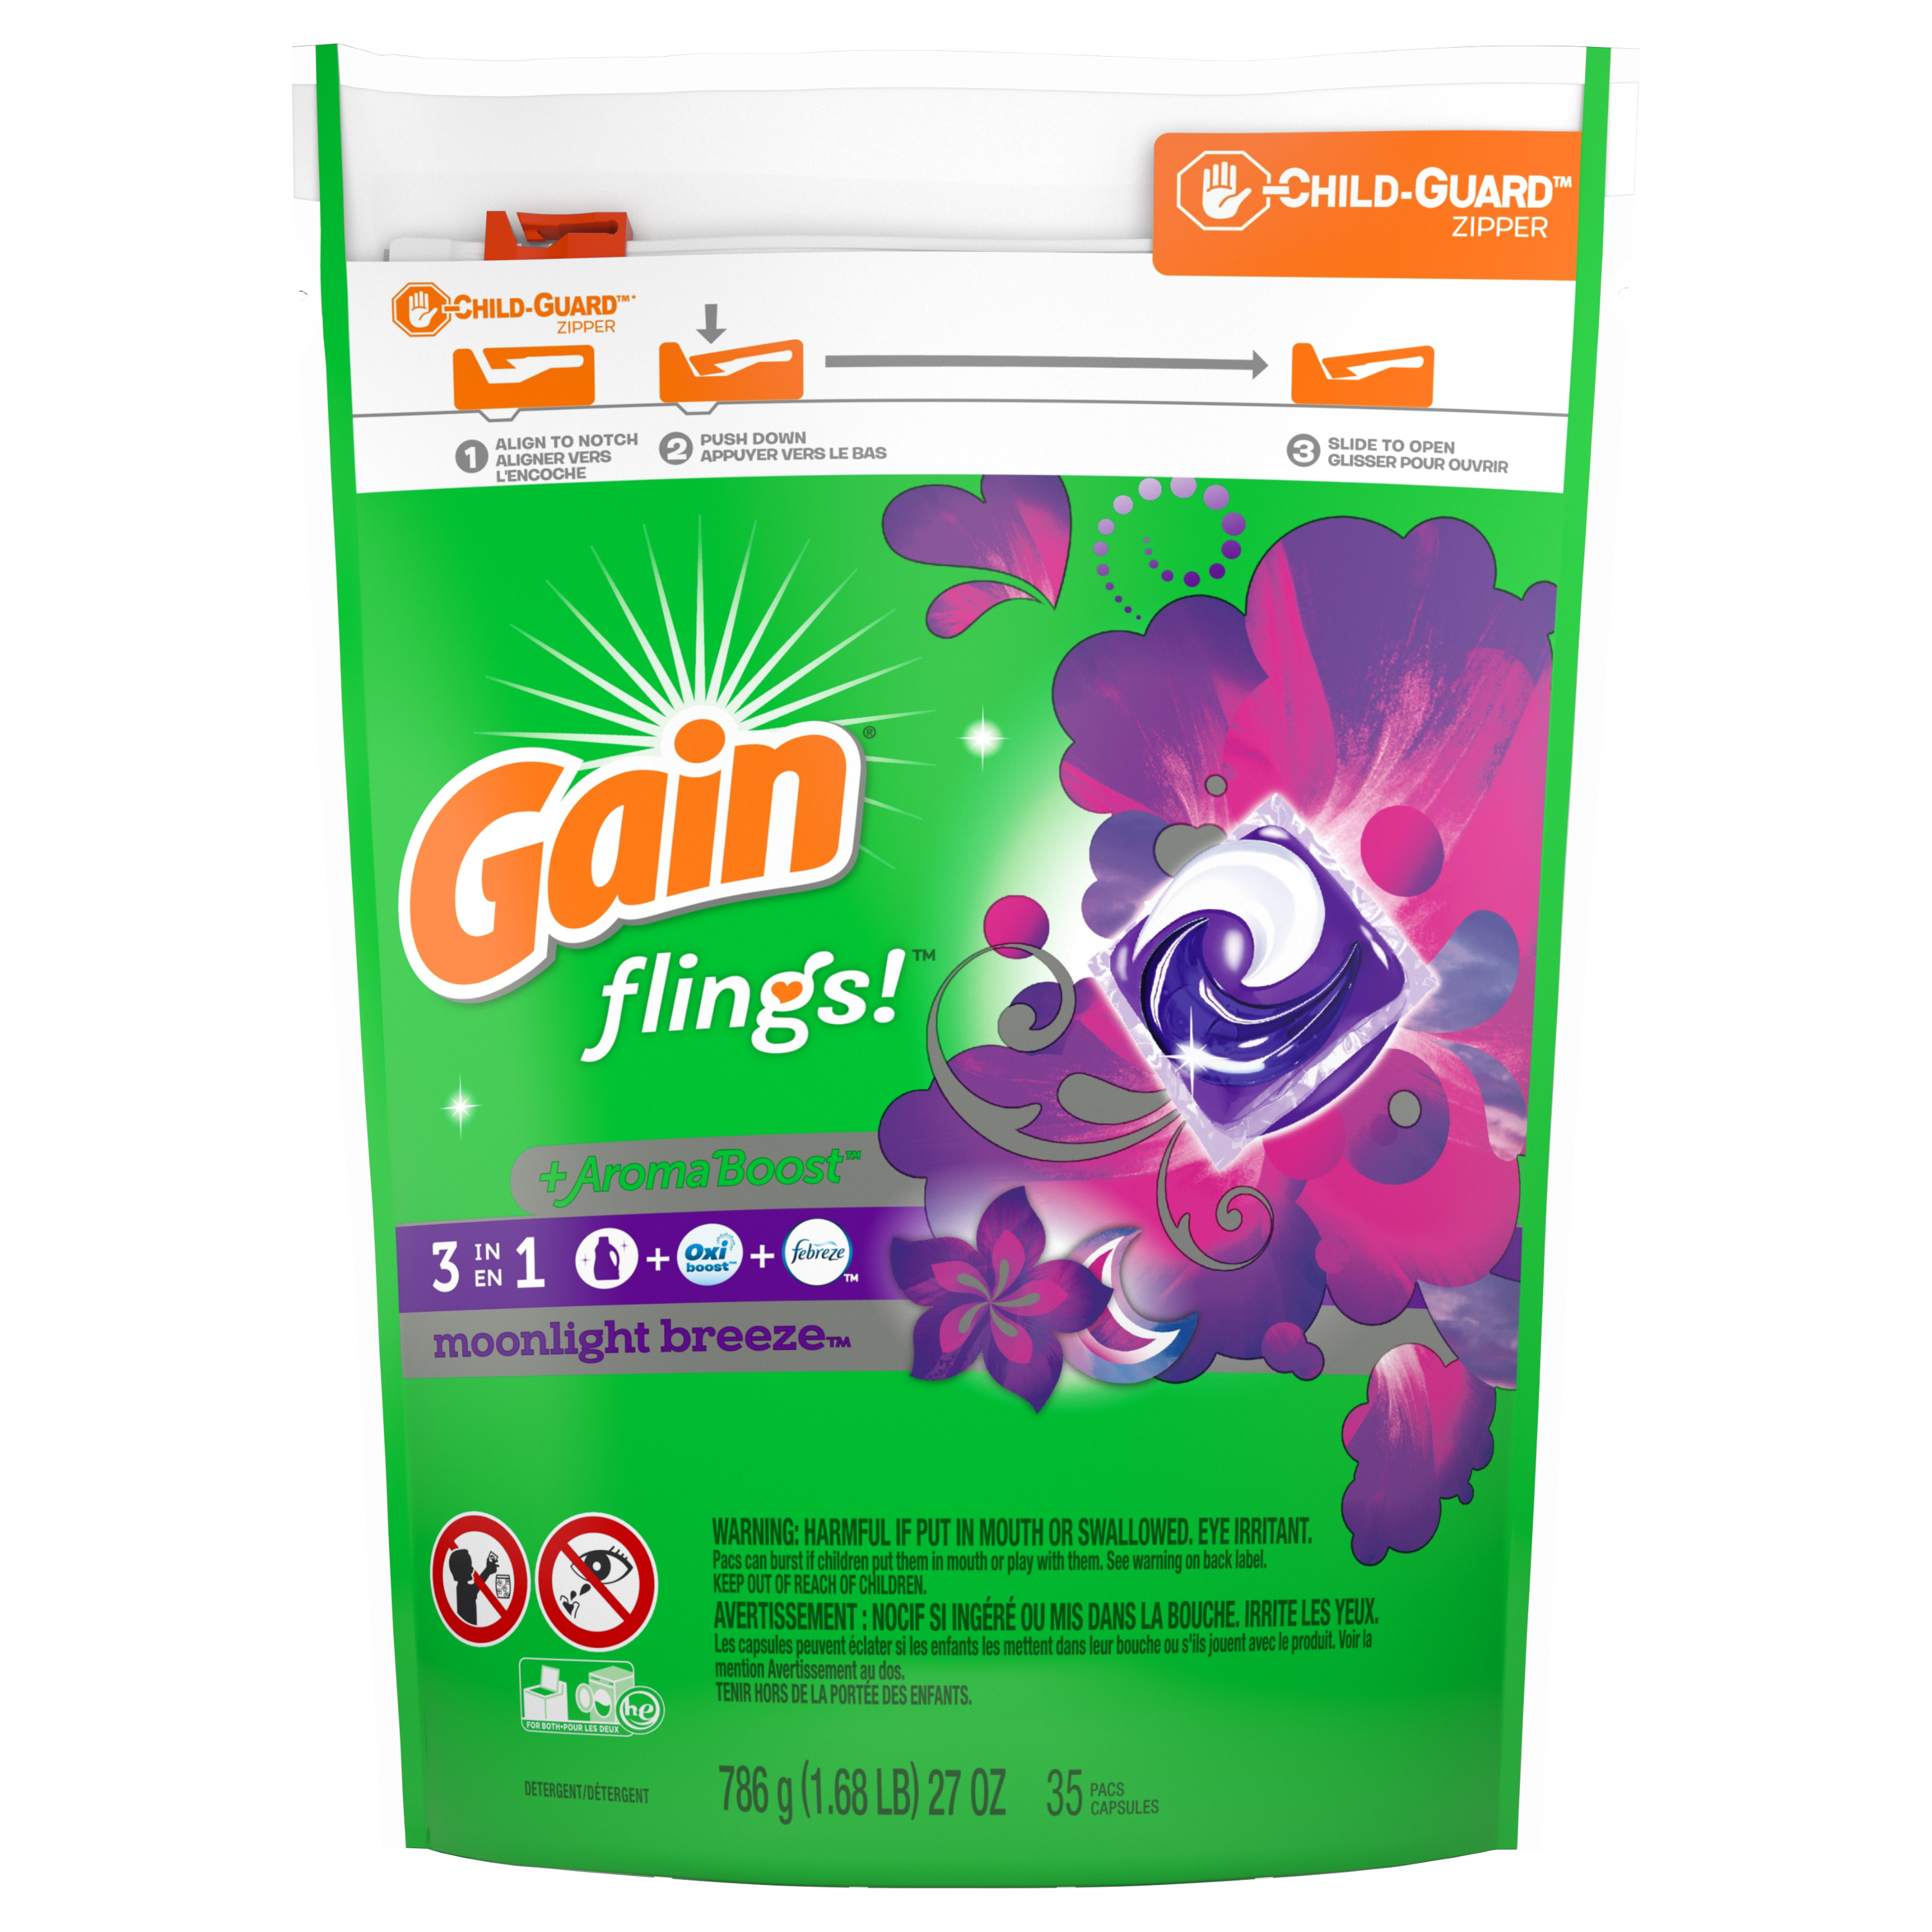 Gain flings! + Aroma Boost Laundry Detergent Pacs, Moonlight Breeze, 35 Count